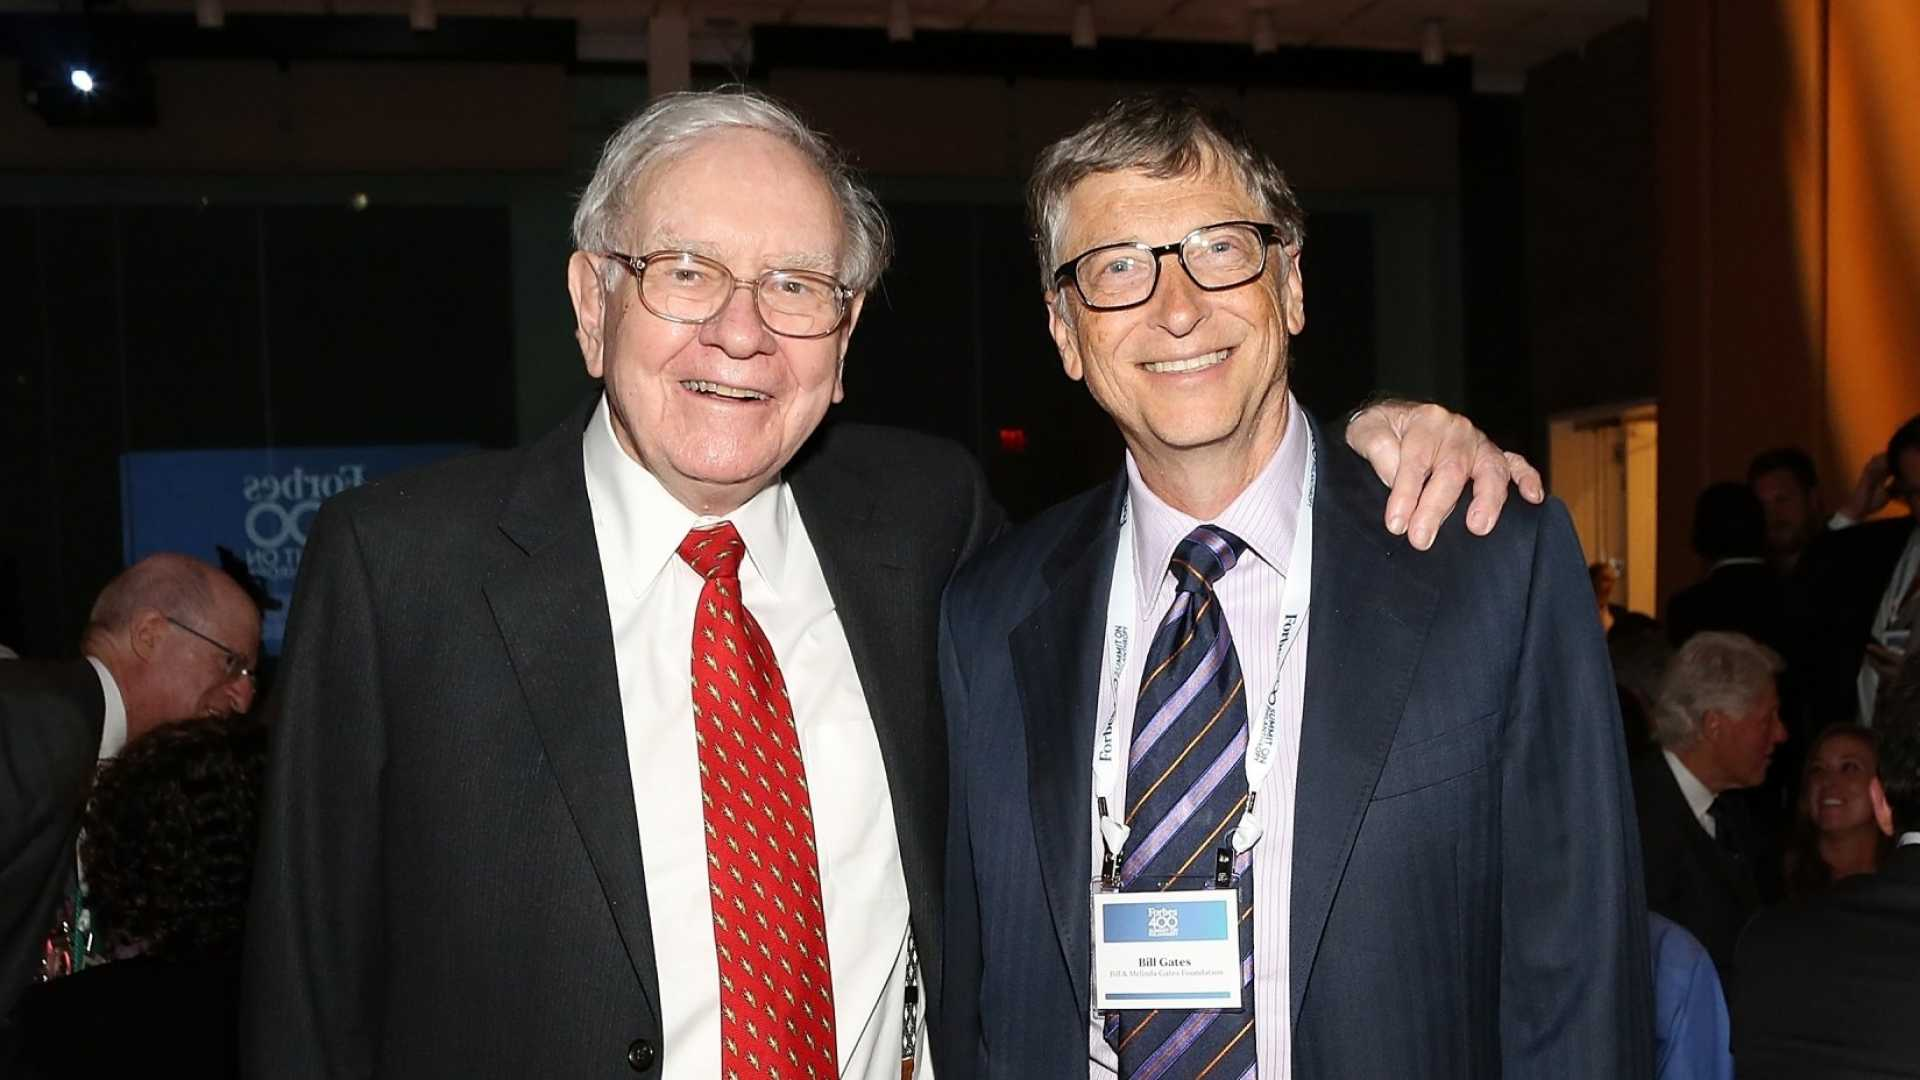 Bill Gates, Warren Buffett, and Other Remarkably Successful Entrepreneurs on What They Would Do If They Had to Start Over